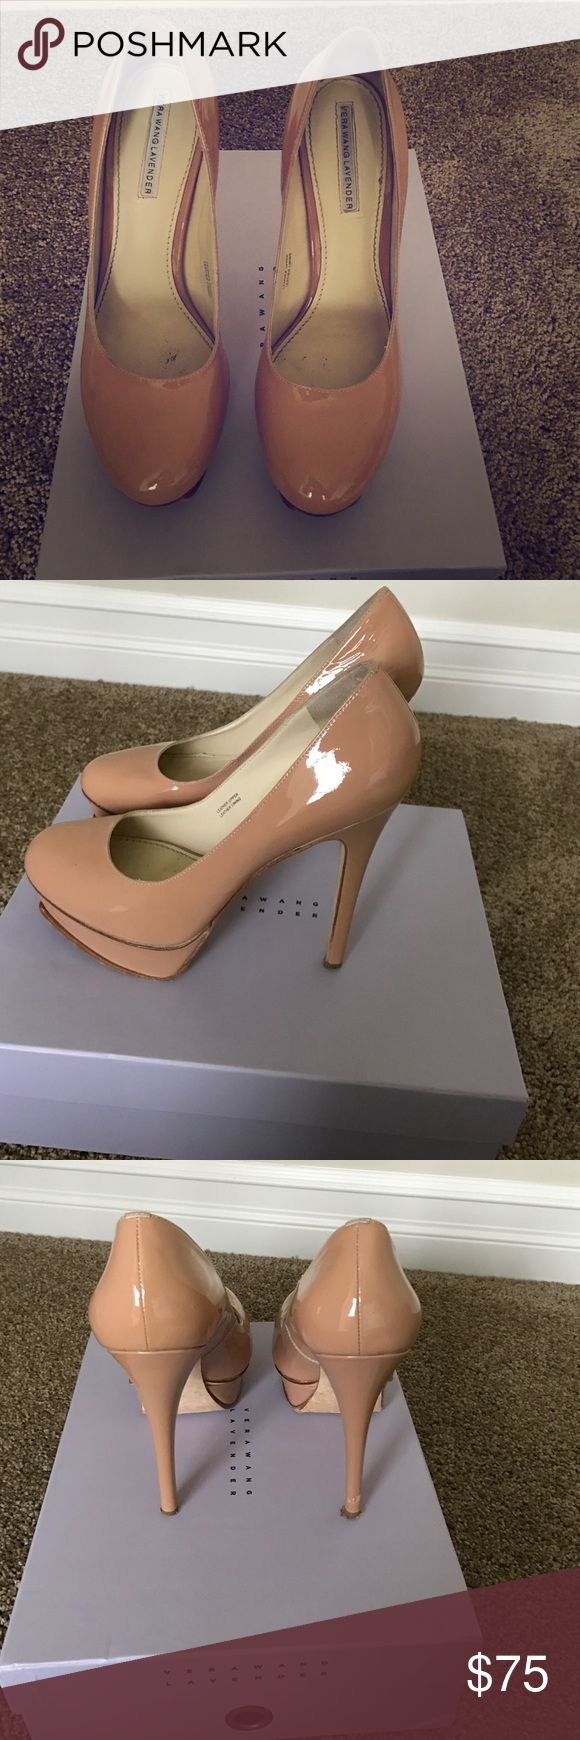 Nude patent leather Vera Wang pumps These are some lovely nude pumps! So comfortable and versatile shoe! Gently worn great for your spring wardrobe. There is a slight defect to the right heel but it can easily be fixed. Comes with box and dust bag. Vera Wang Shoes Heels